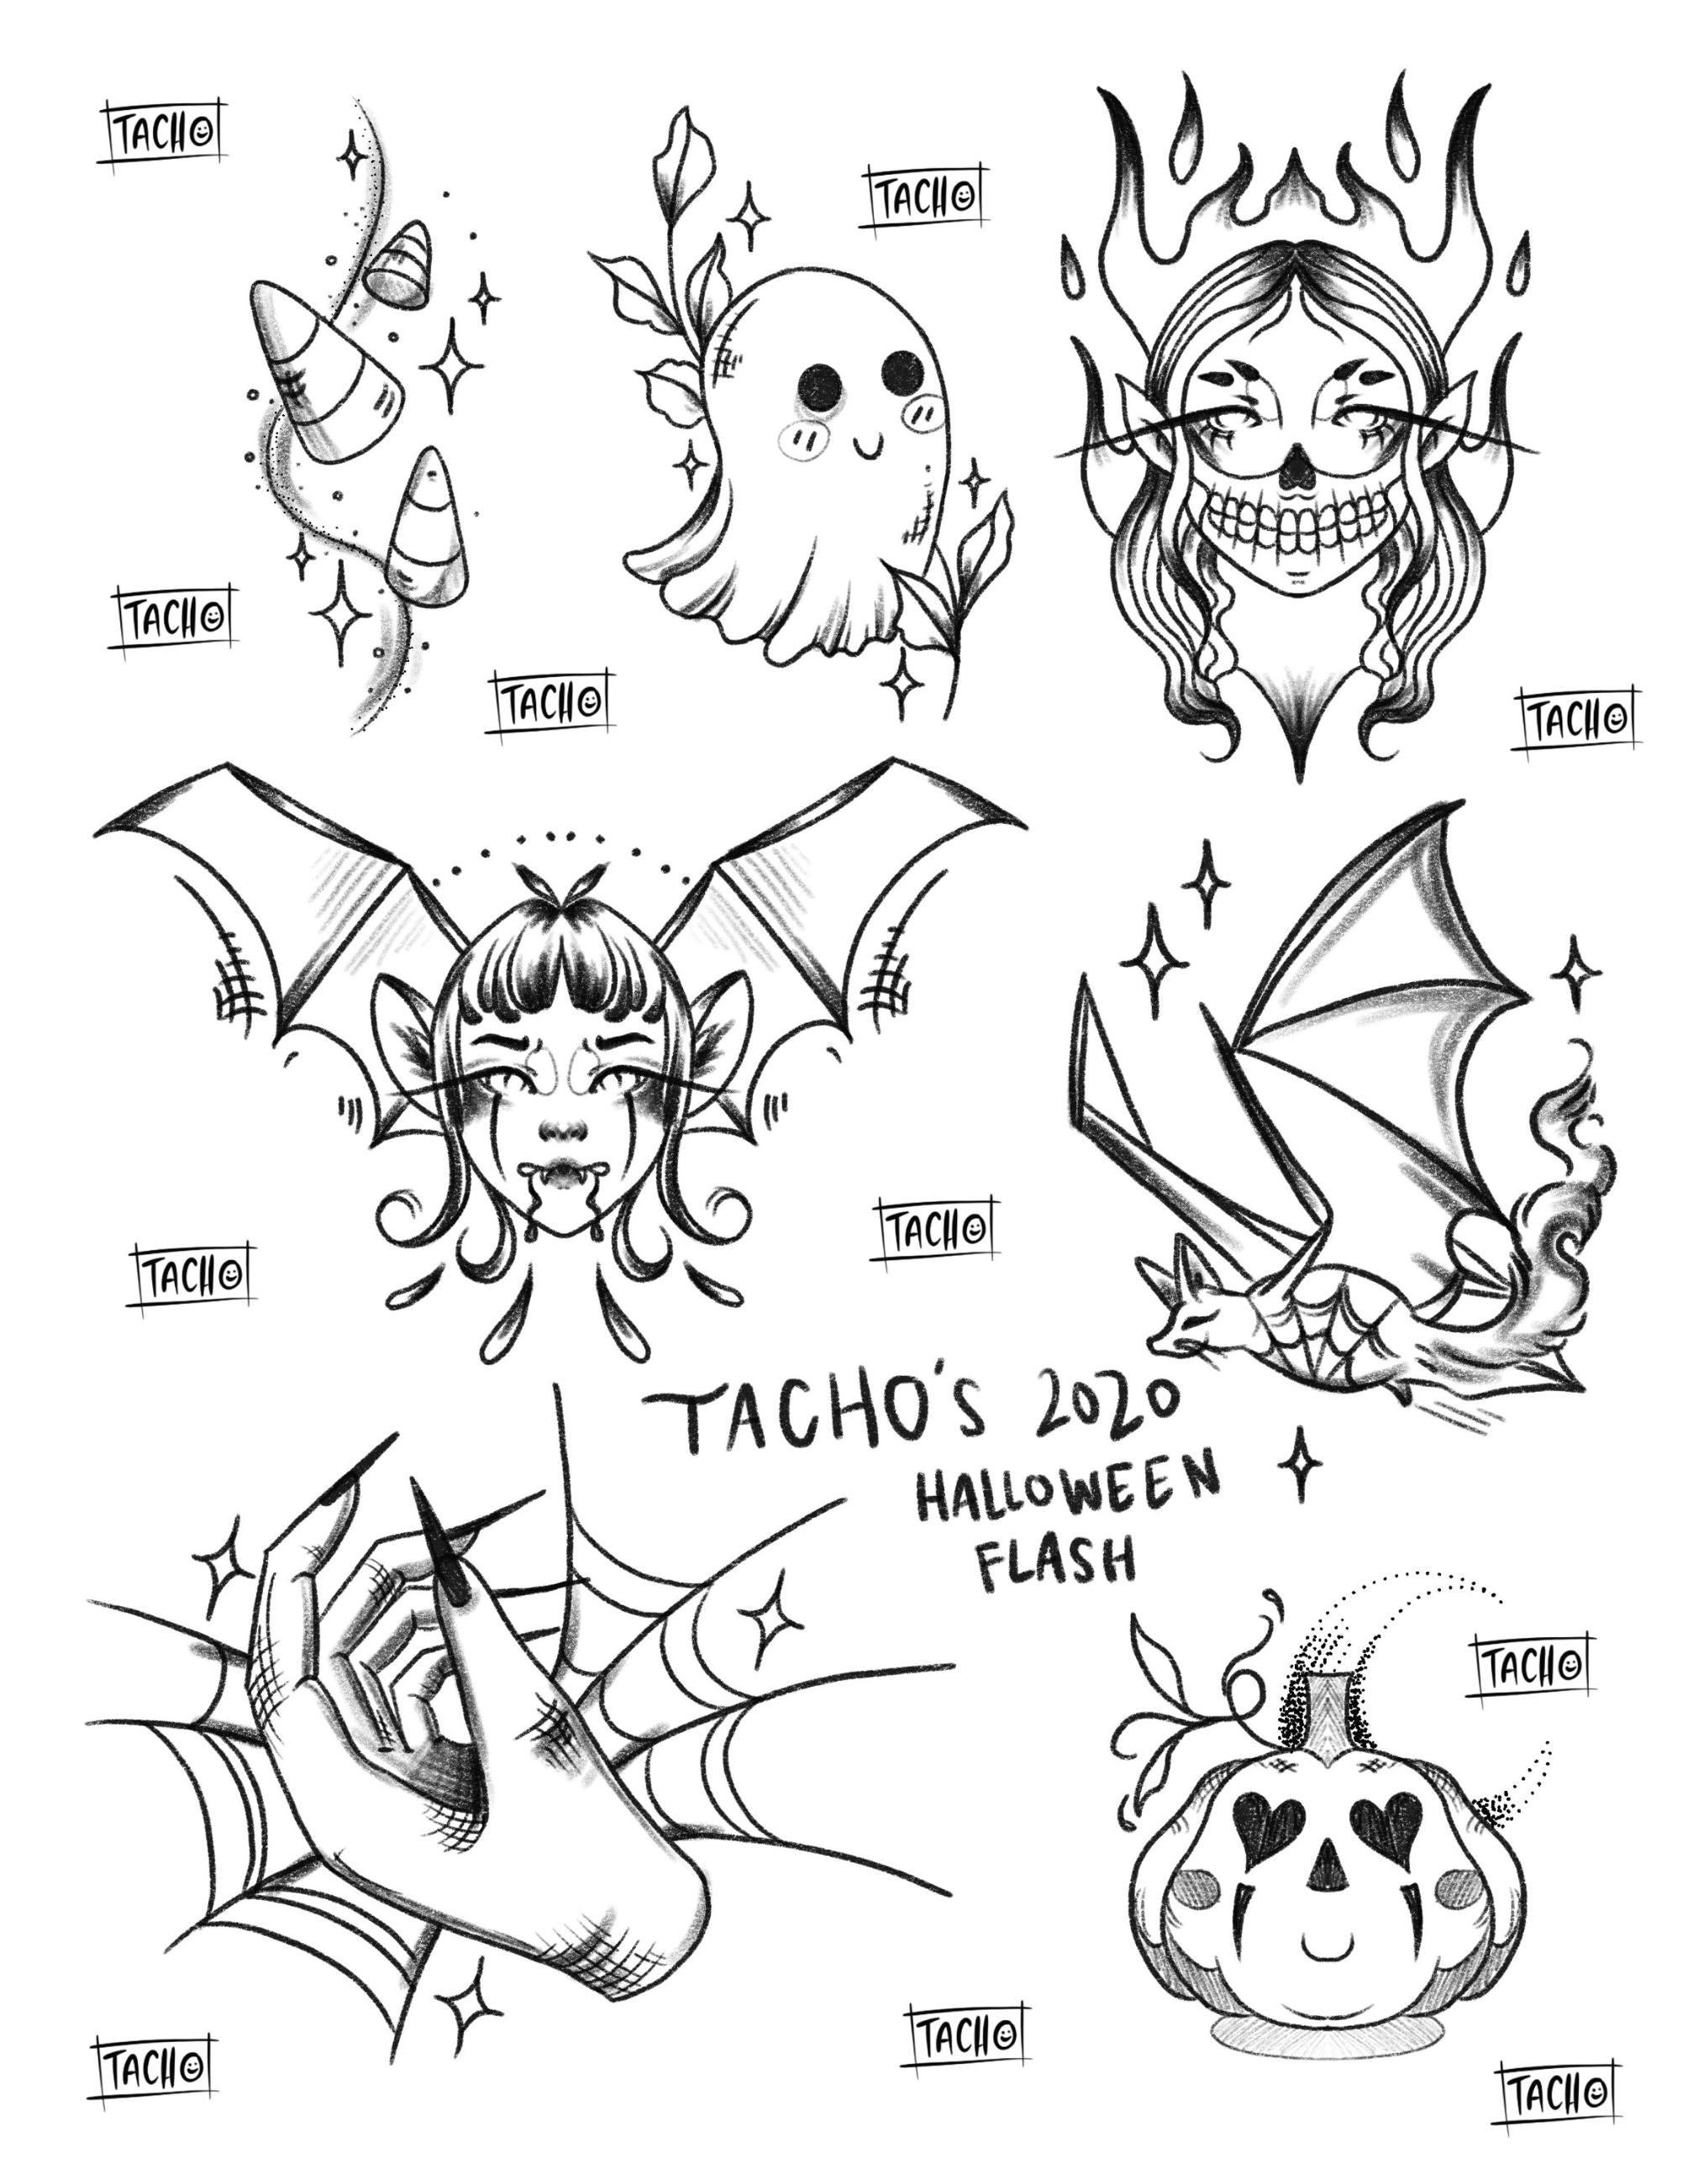 Tachos Halloween Flash Tattoos